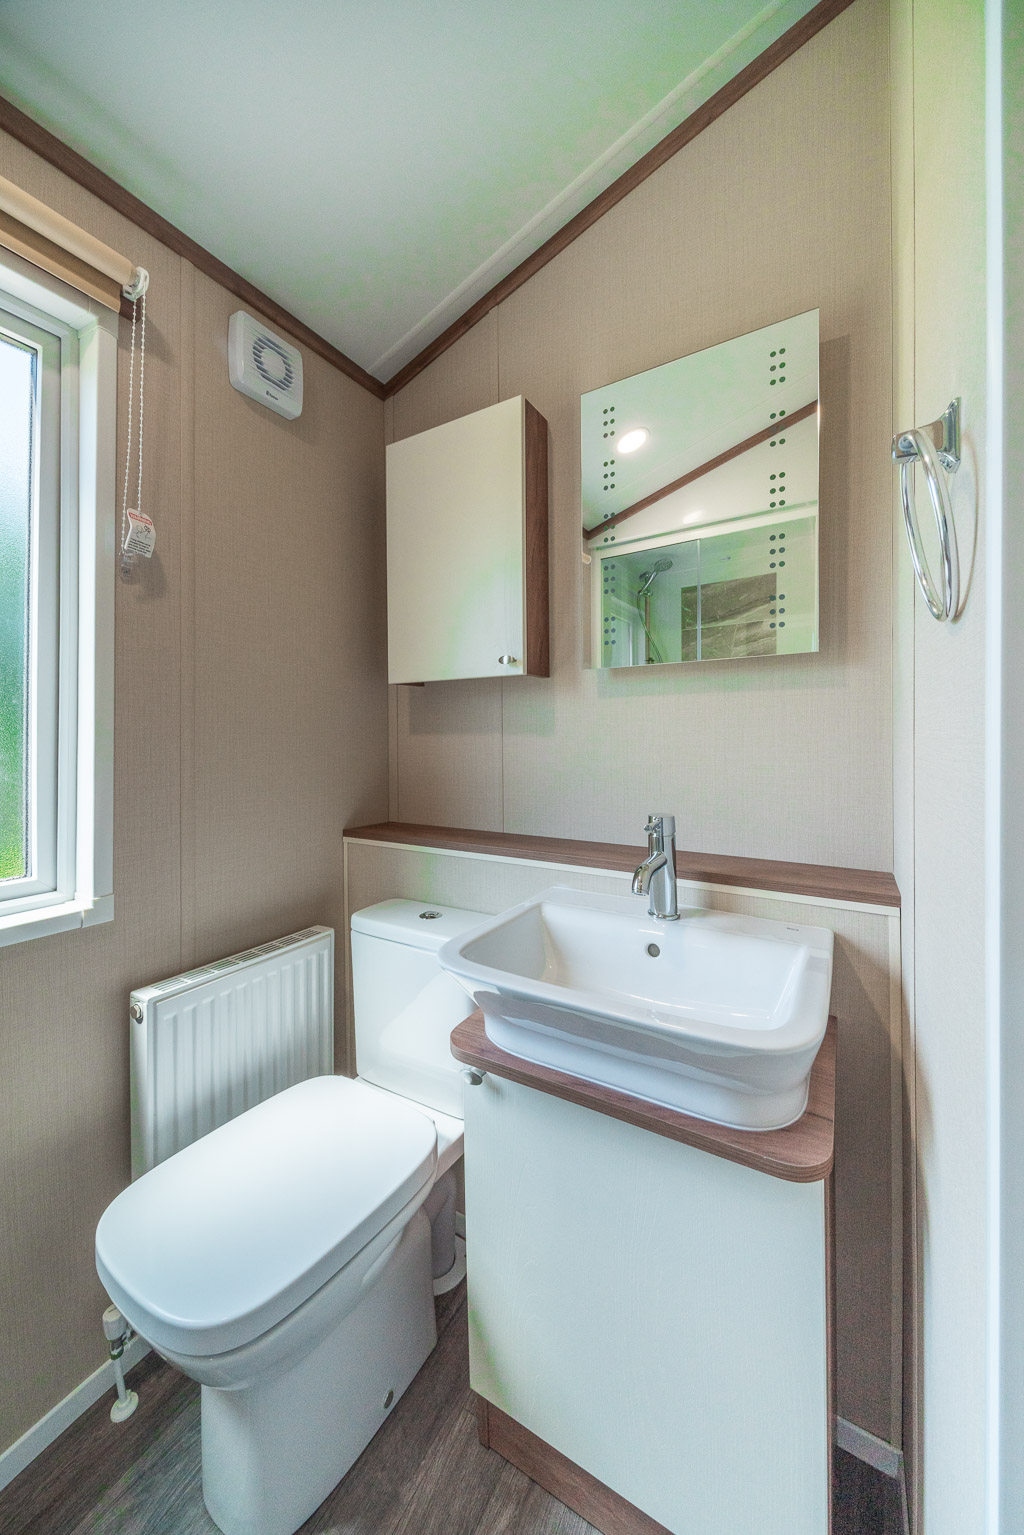 Andrewshayes-Orchard-Lodge-Static-Caravan-Holiday-East-Devon-Hot-Tub-10